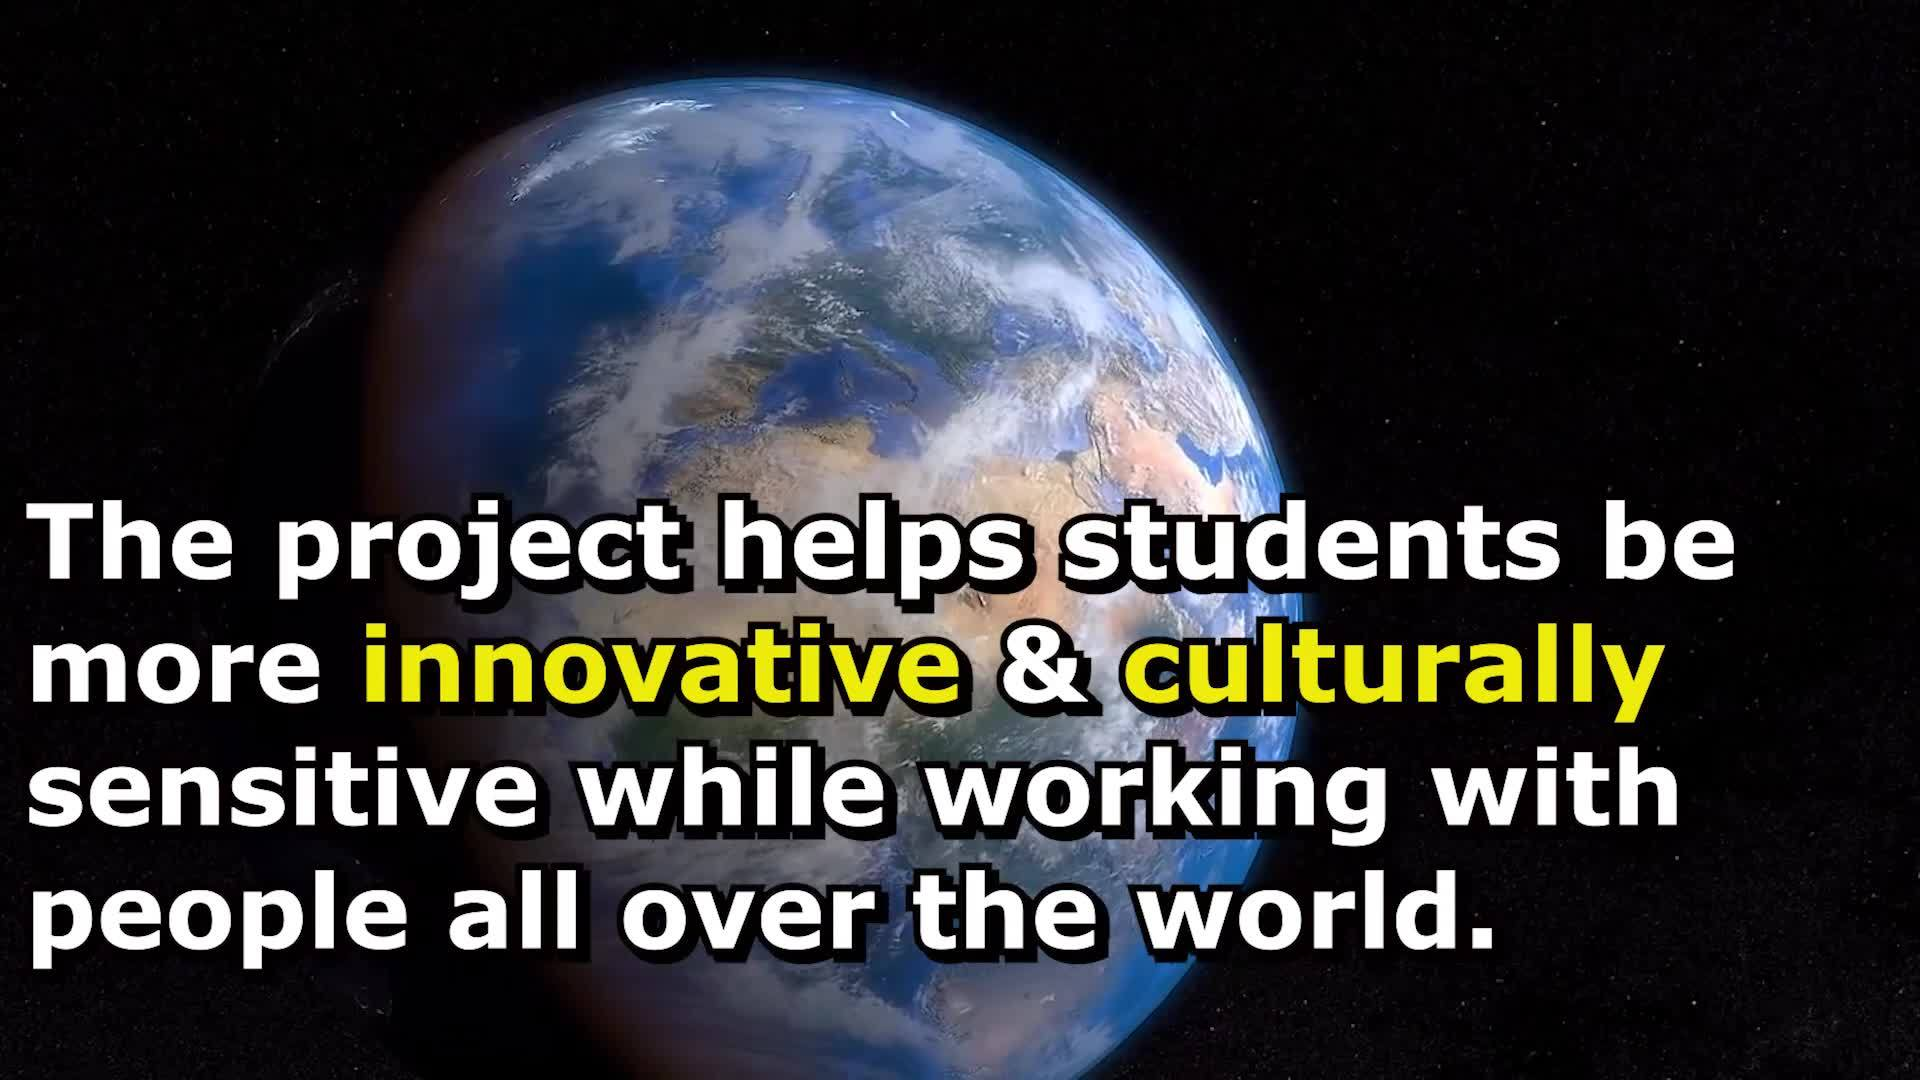 Web_Extra__UALR_Students_Work_to_Develop_7_20190125232024-118809306